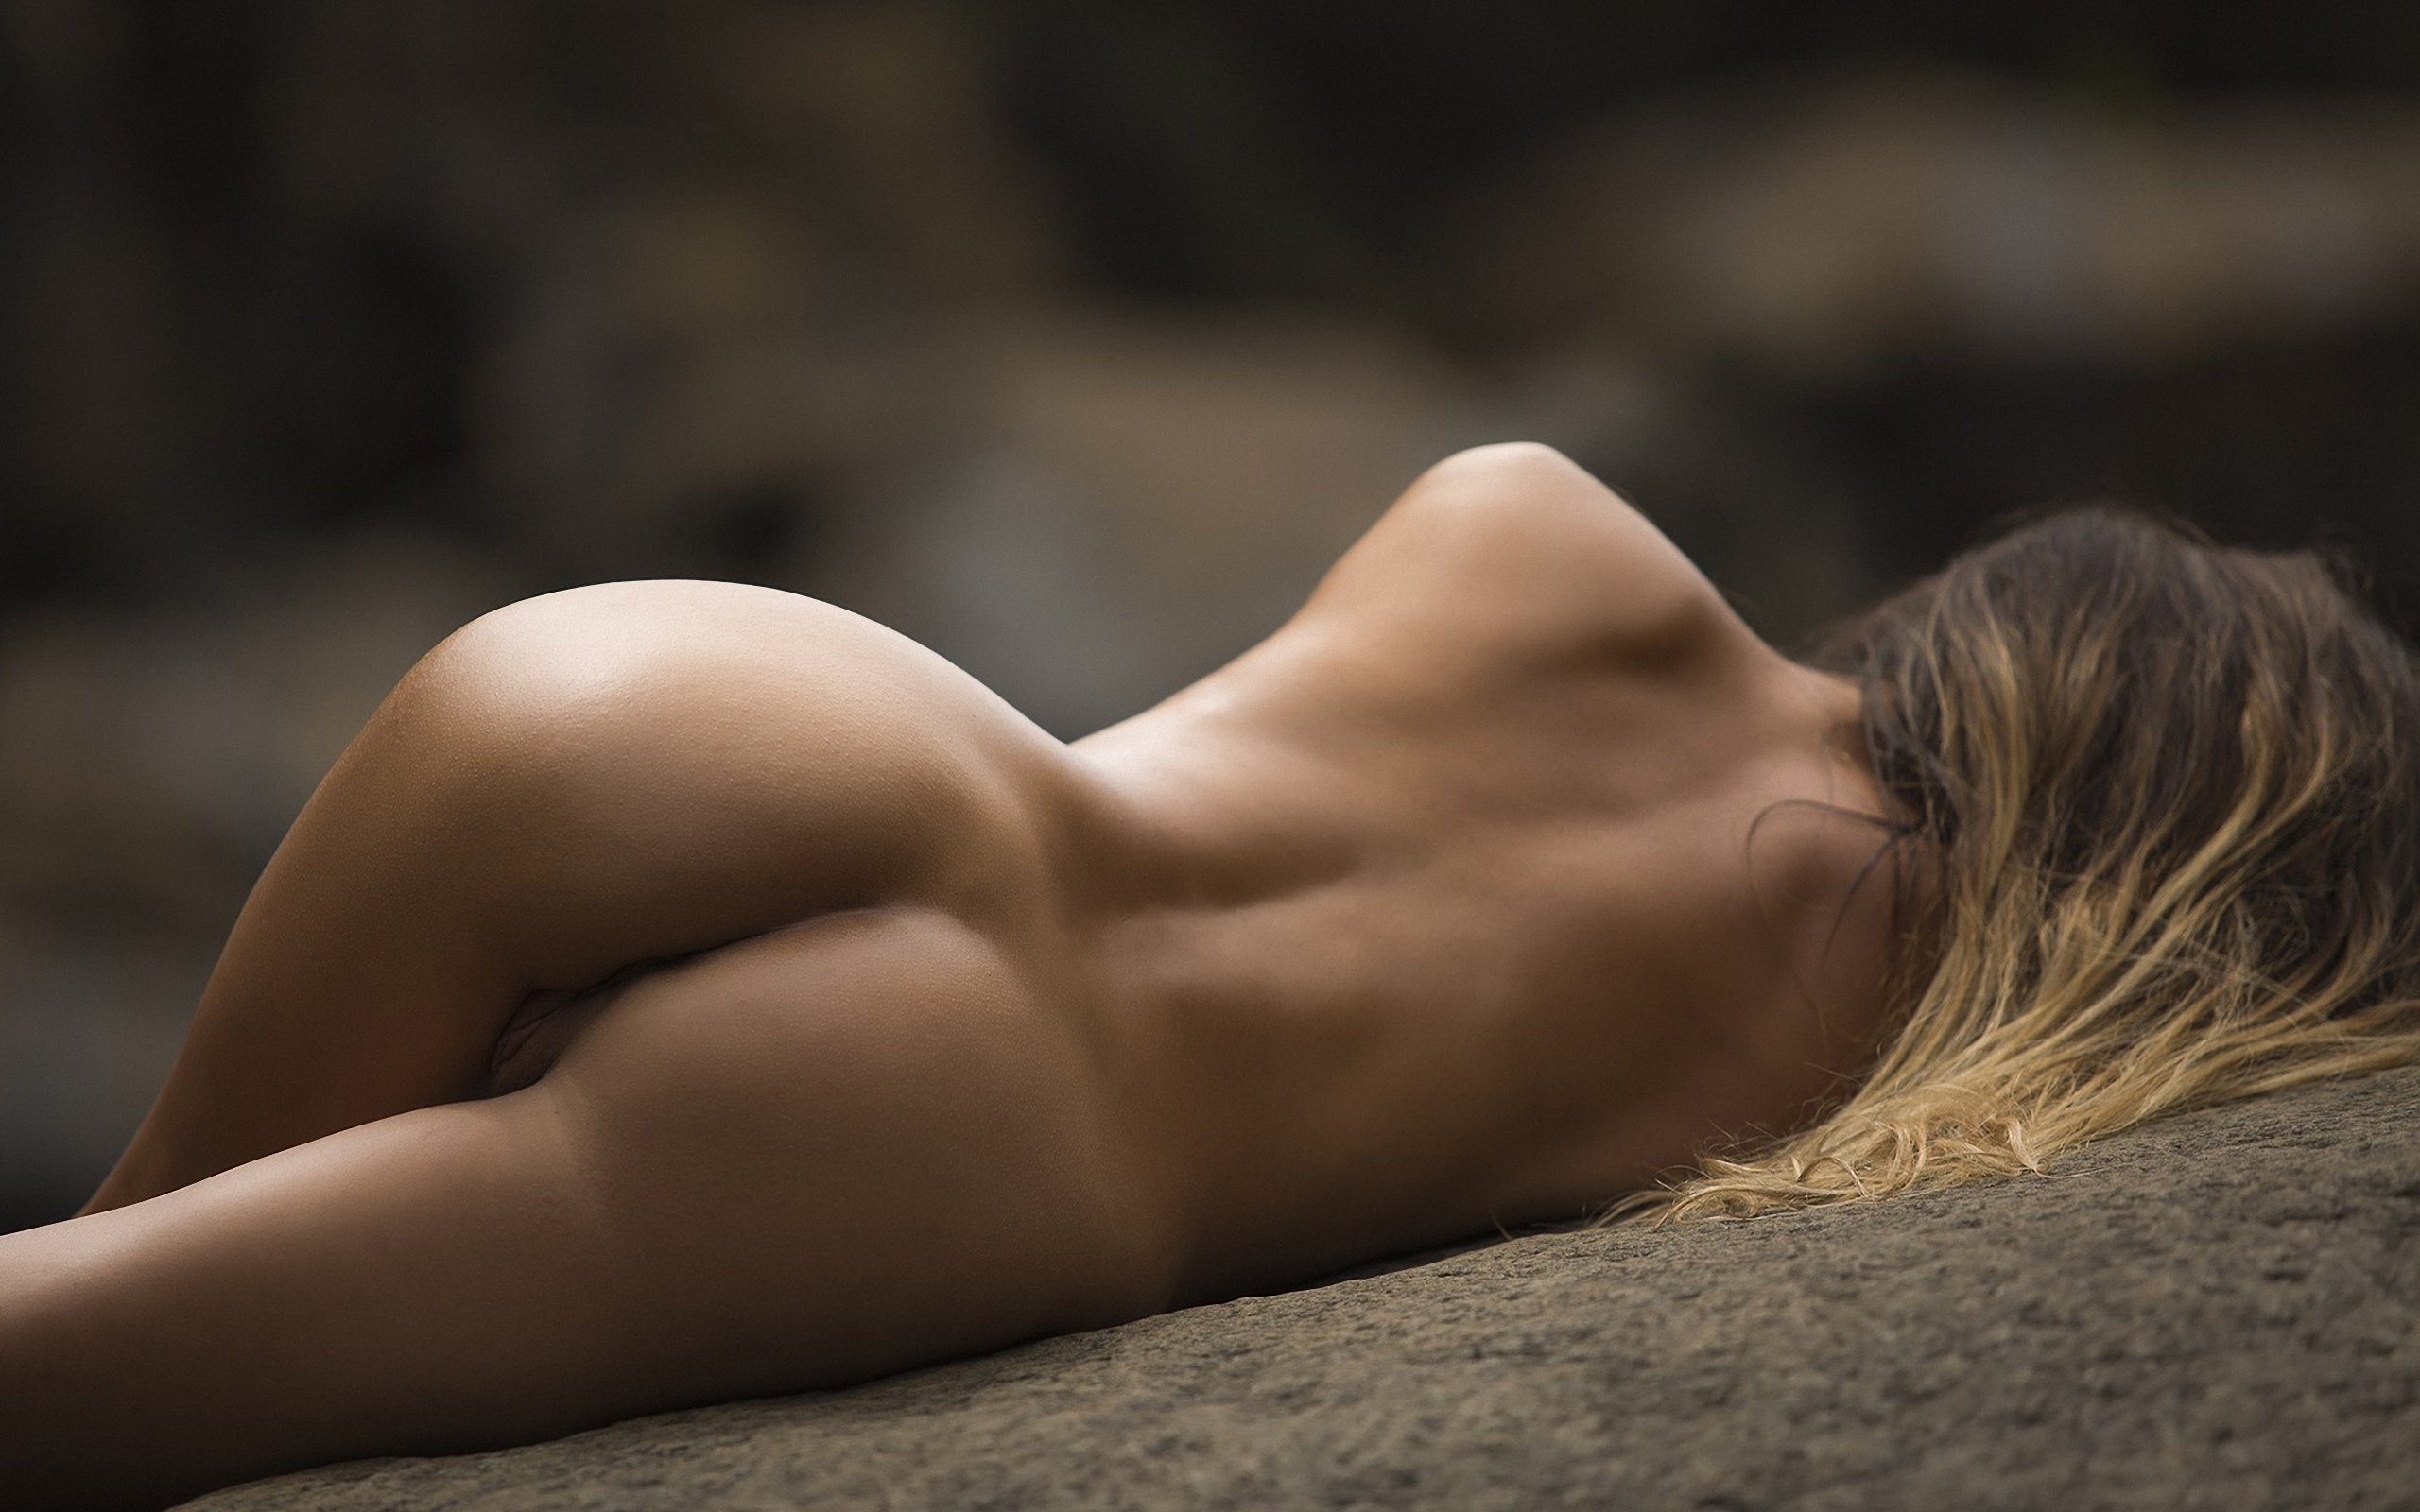 Nude woman sitting on bed photo free image on unsplash